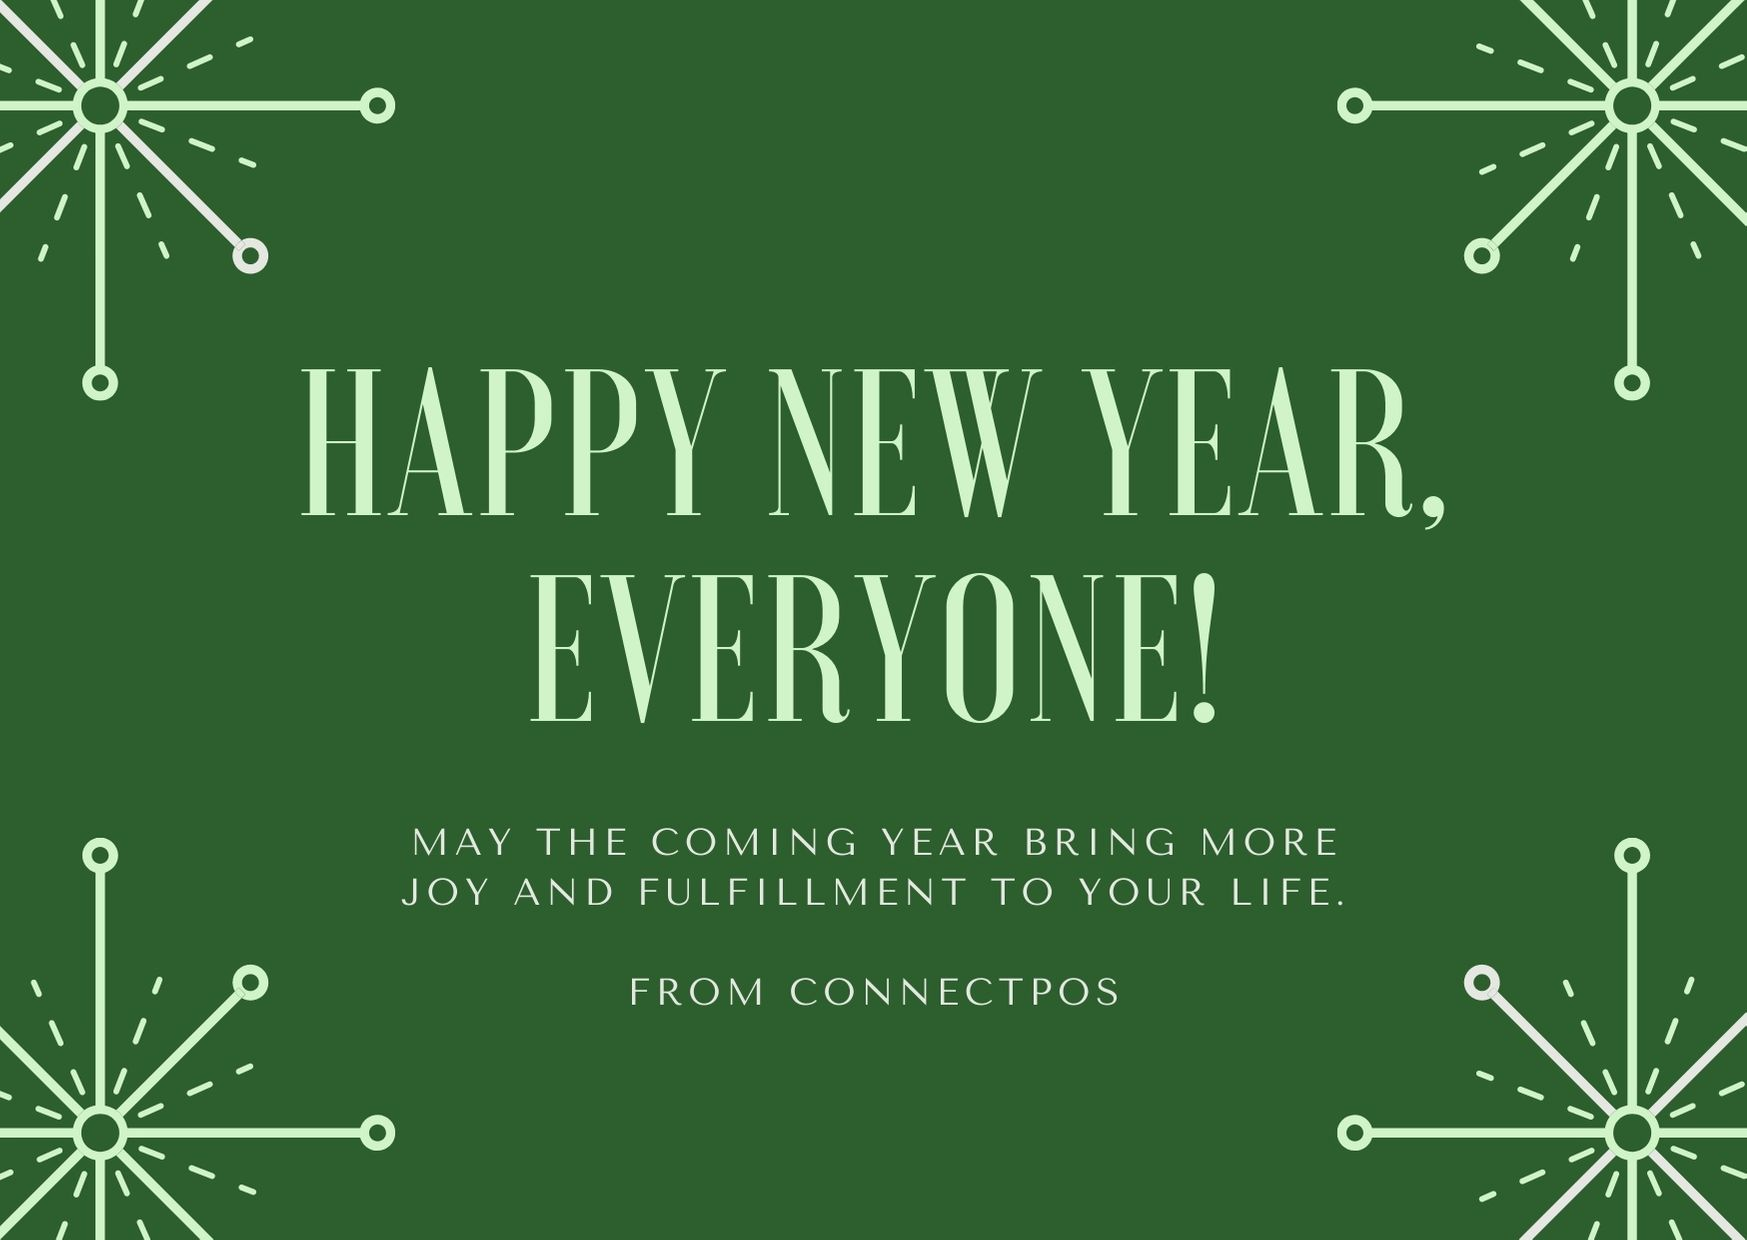 Happy New Year from ConnectPOS